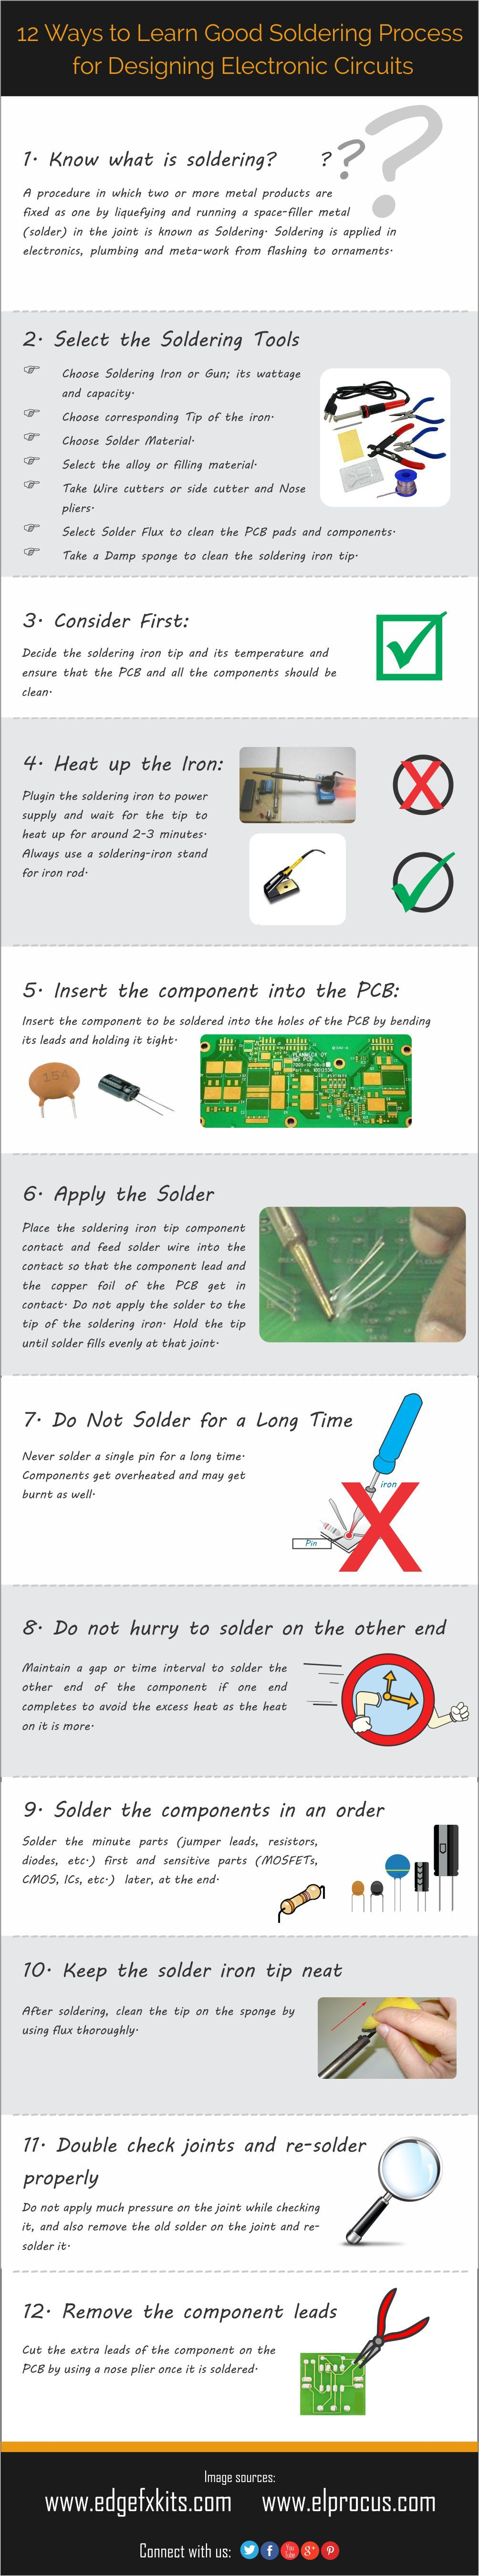 10 Ways to Learn Good #Soldering Process for Designing Electronic ...